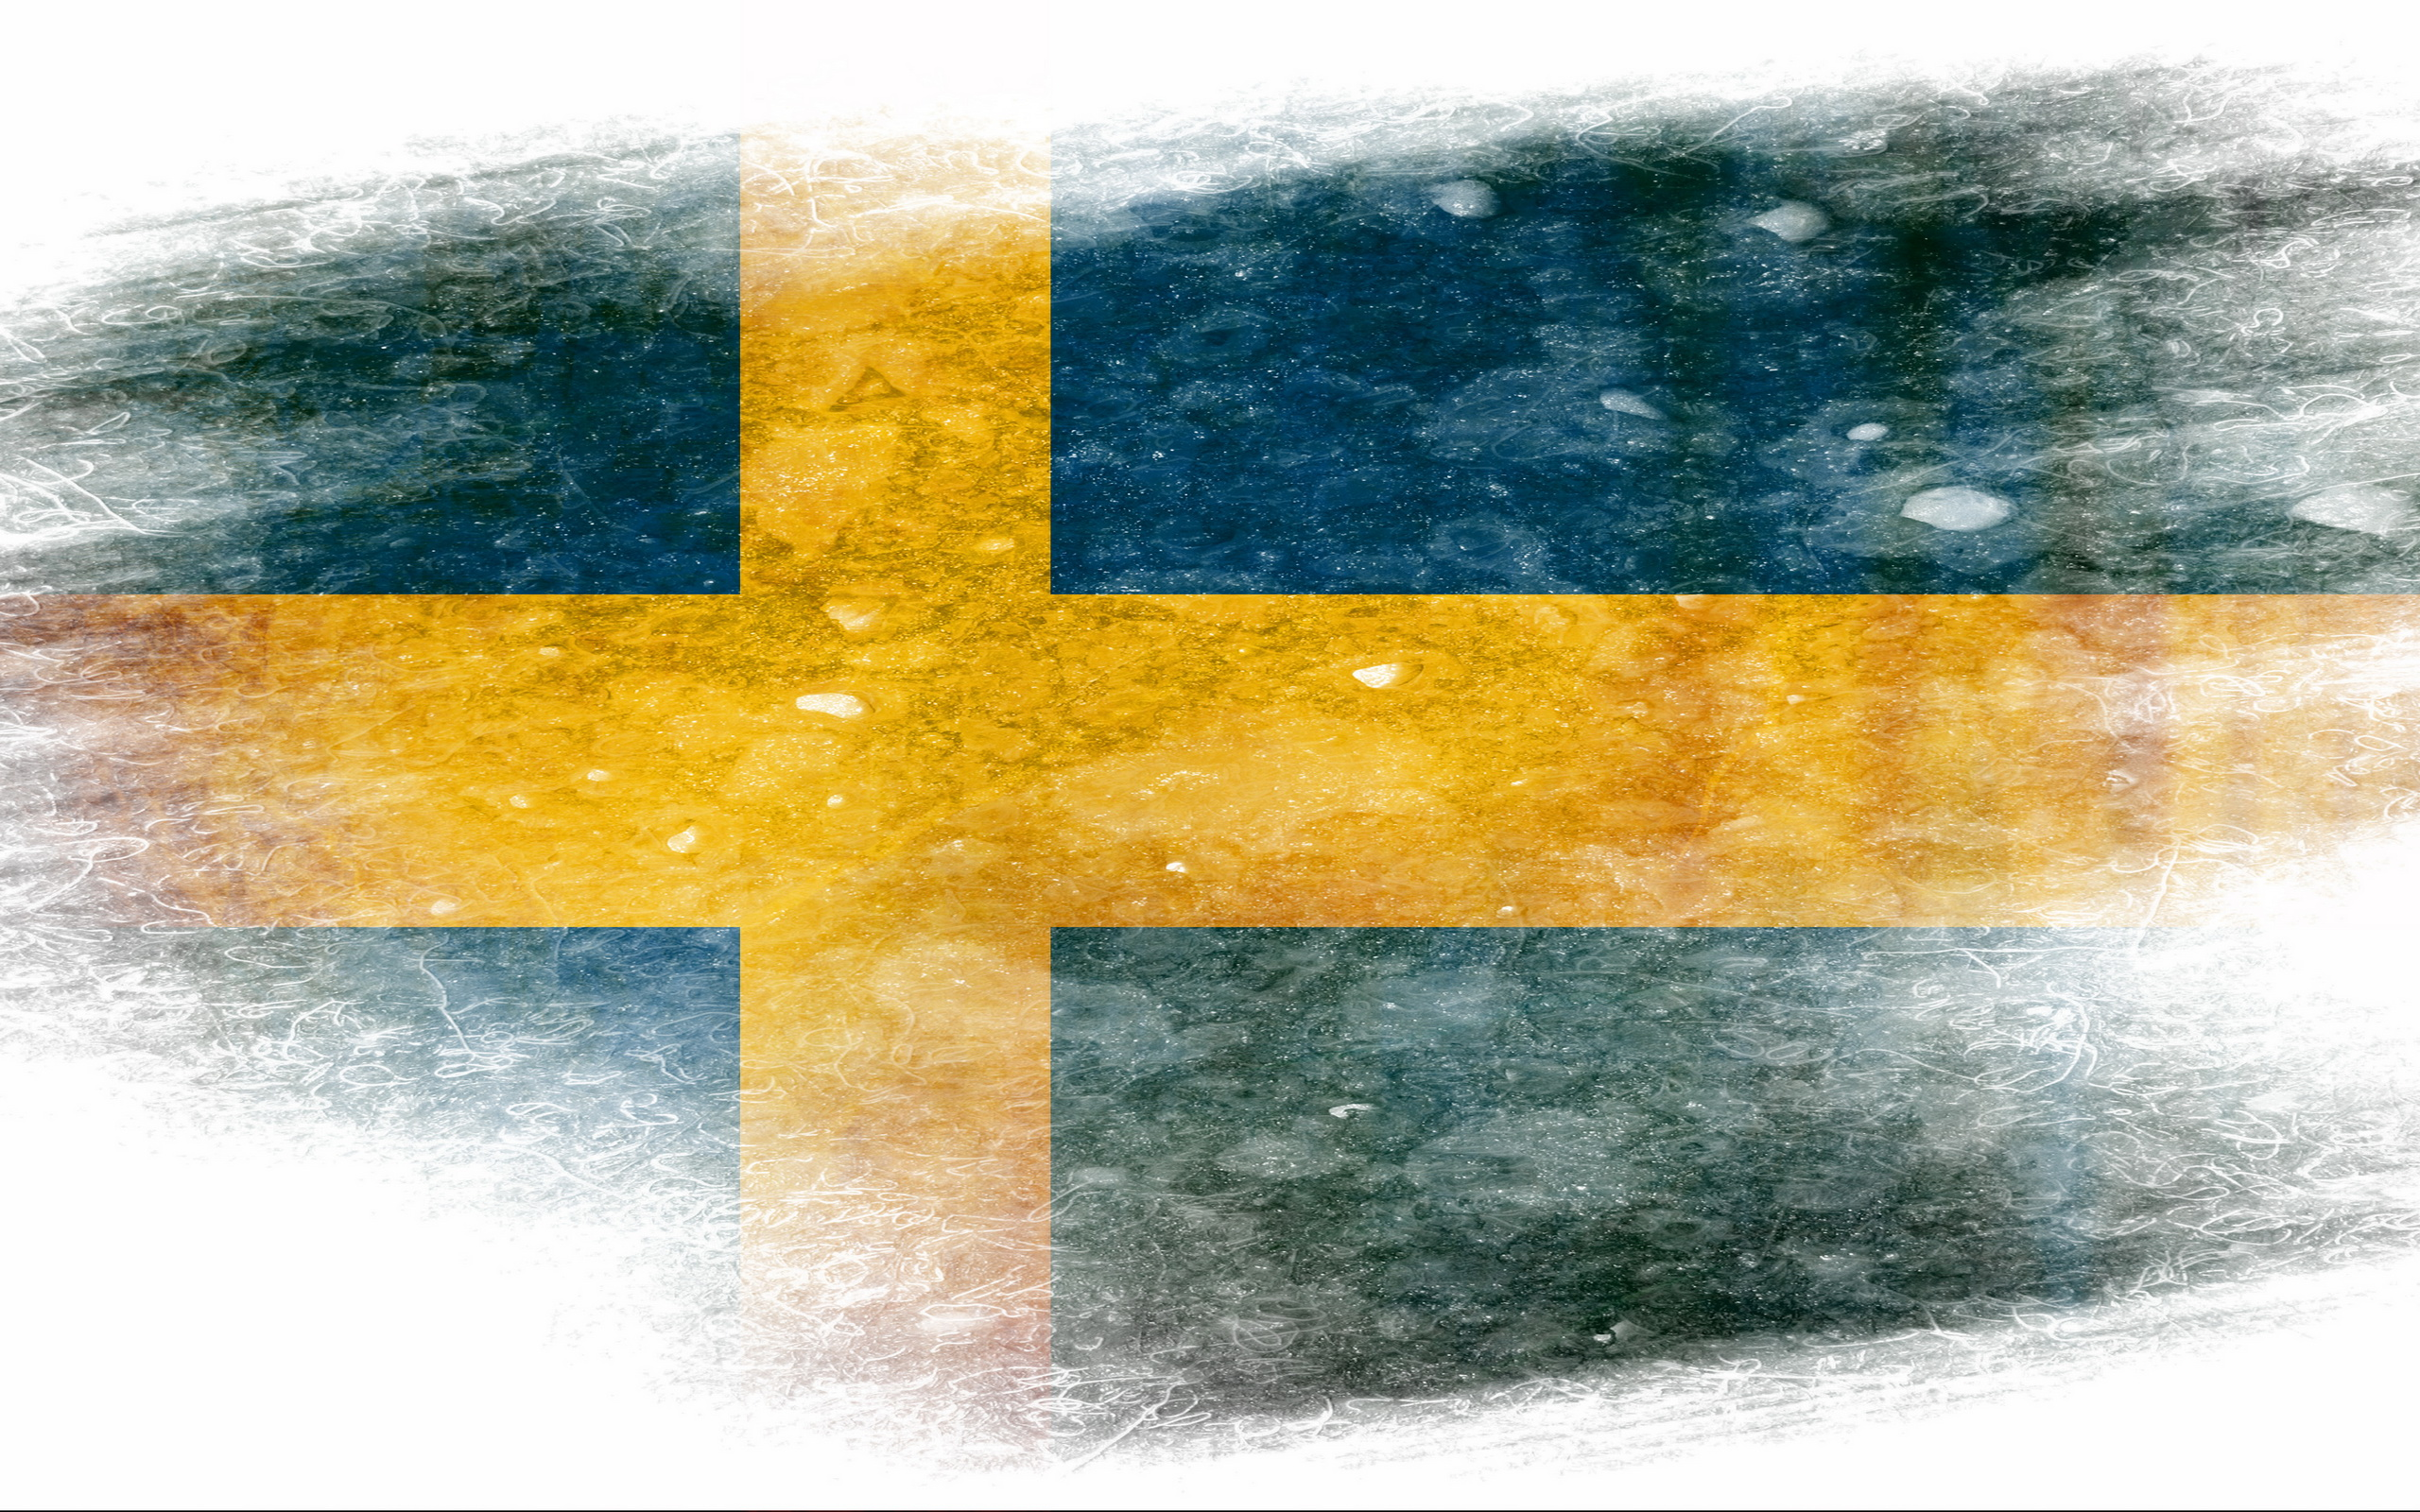 Flag Of Sweden Full Hd Wallpaper And Background Image HD Wallpapers Download Free Images Wallpaper [1000image.com]